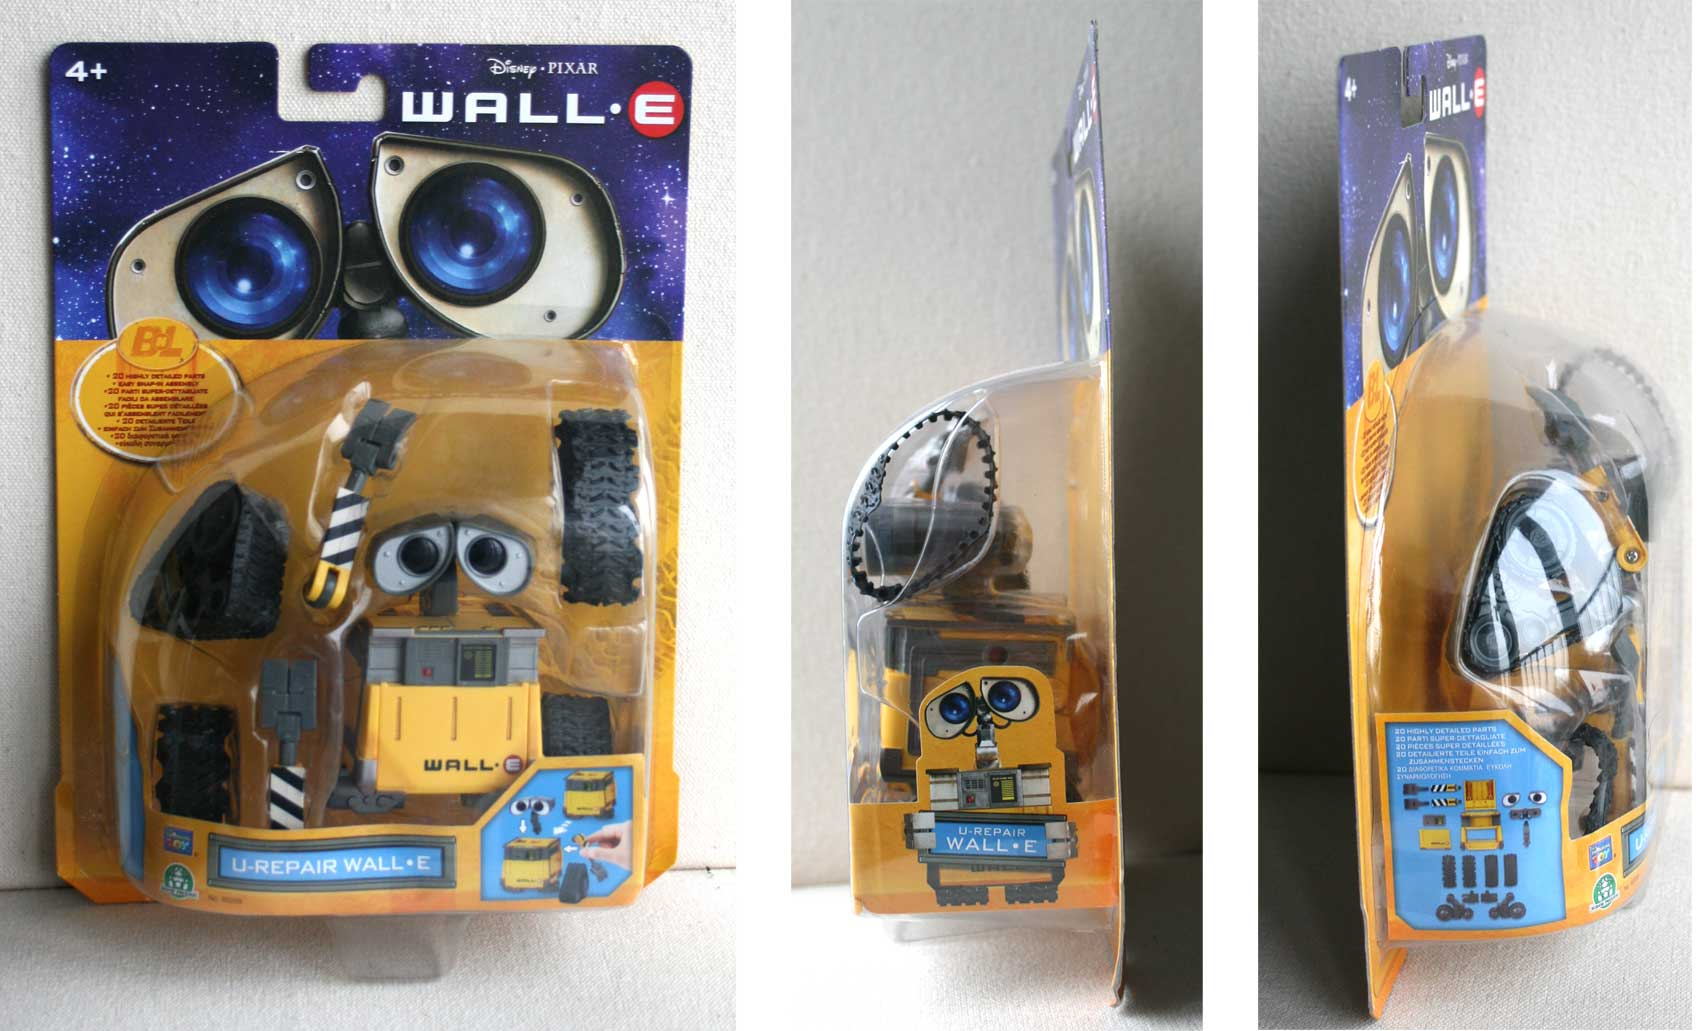 U-Repair Wall-E (2008) Packaging face et profil